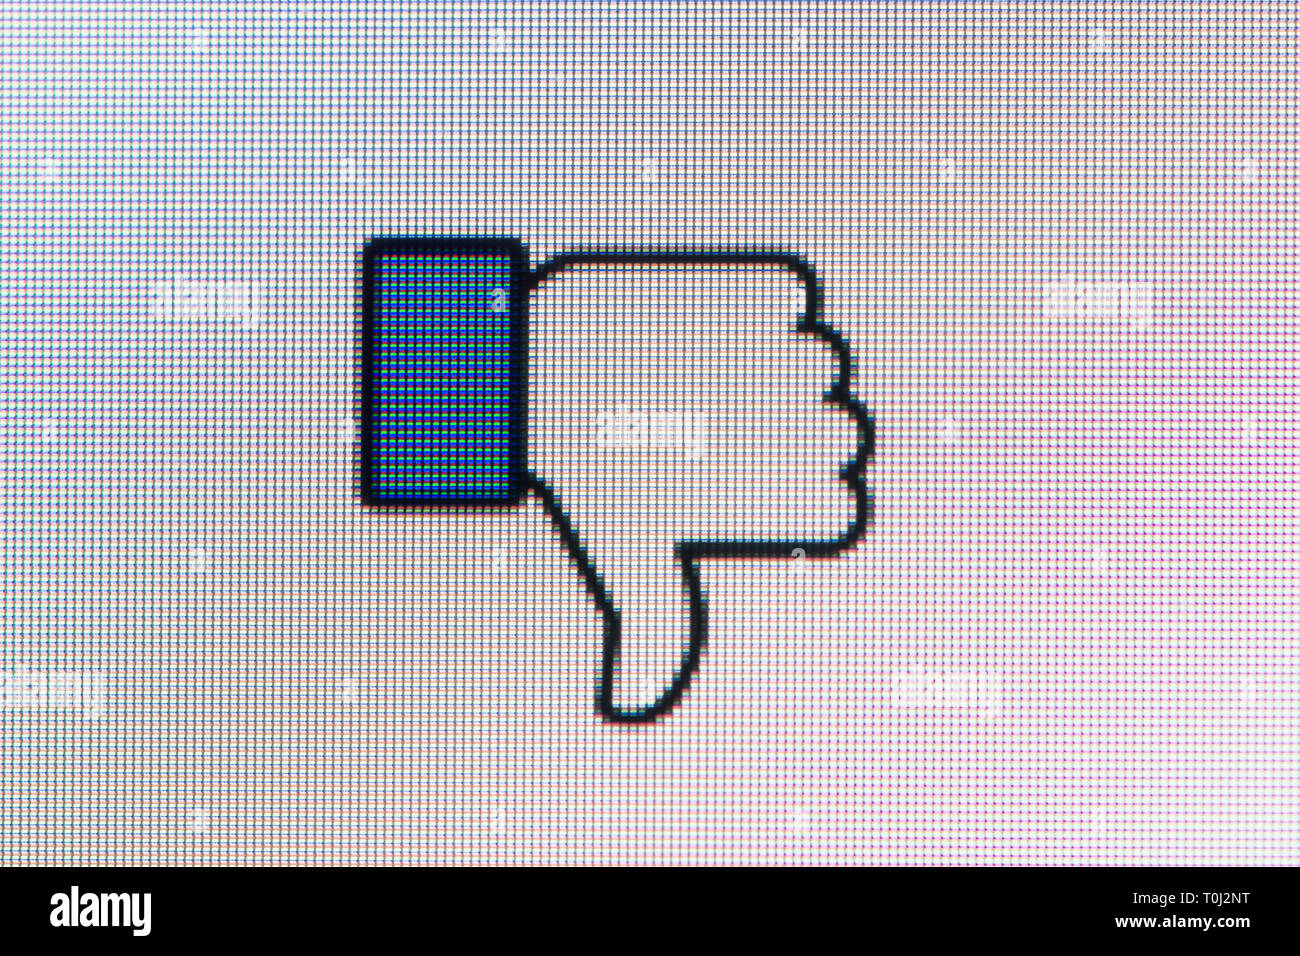 A thumbs down or dislike icon based on the Facebook like icon (Editorial use only) - Stock Image